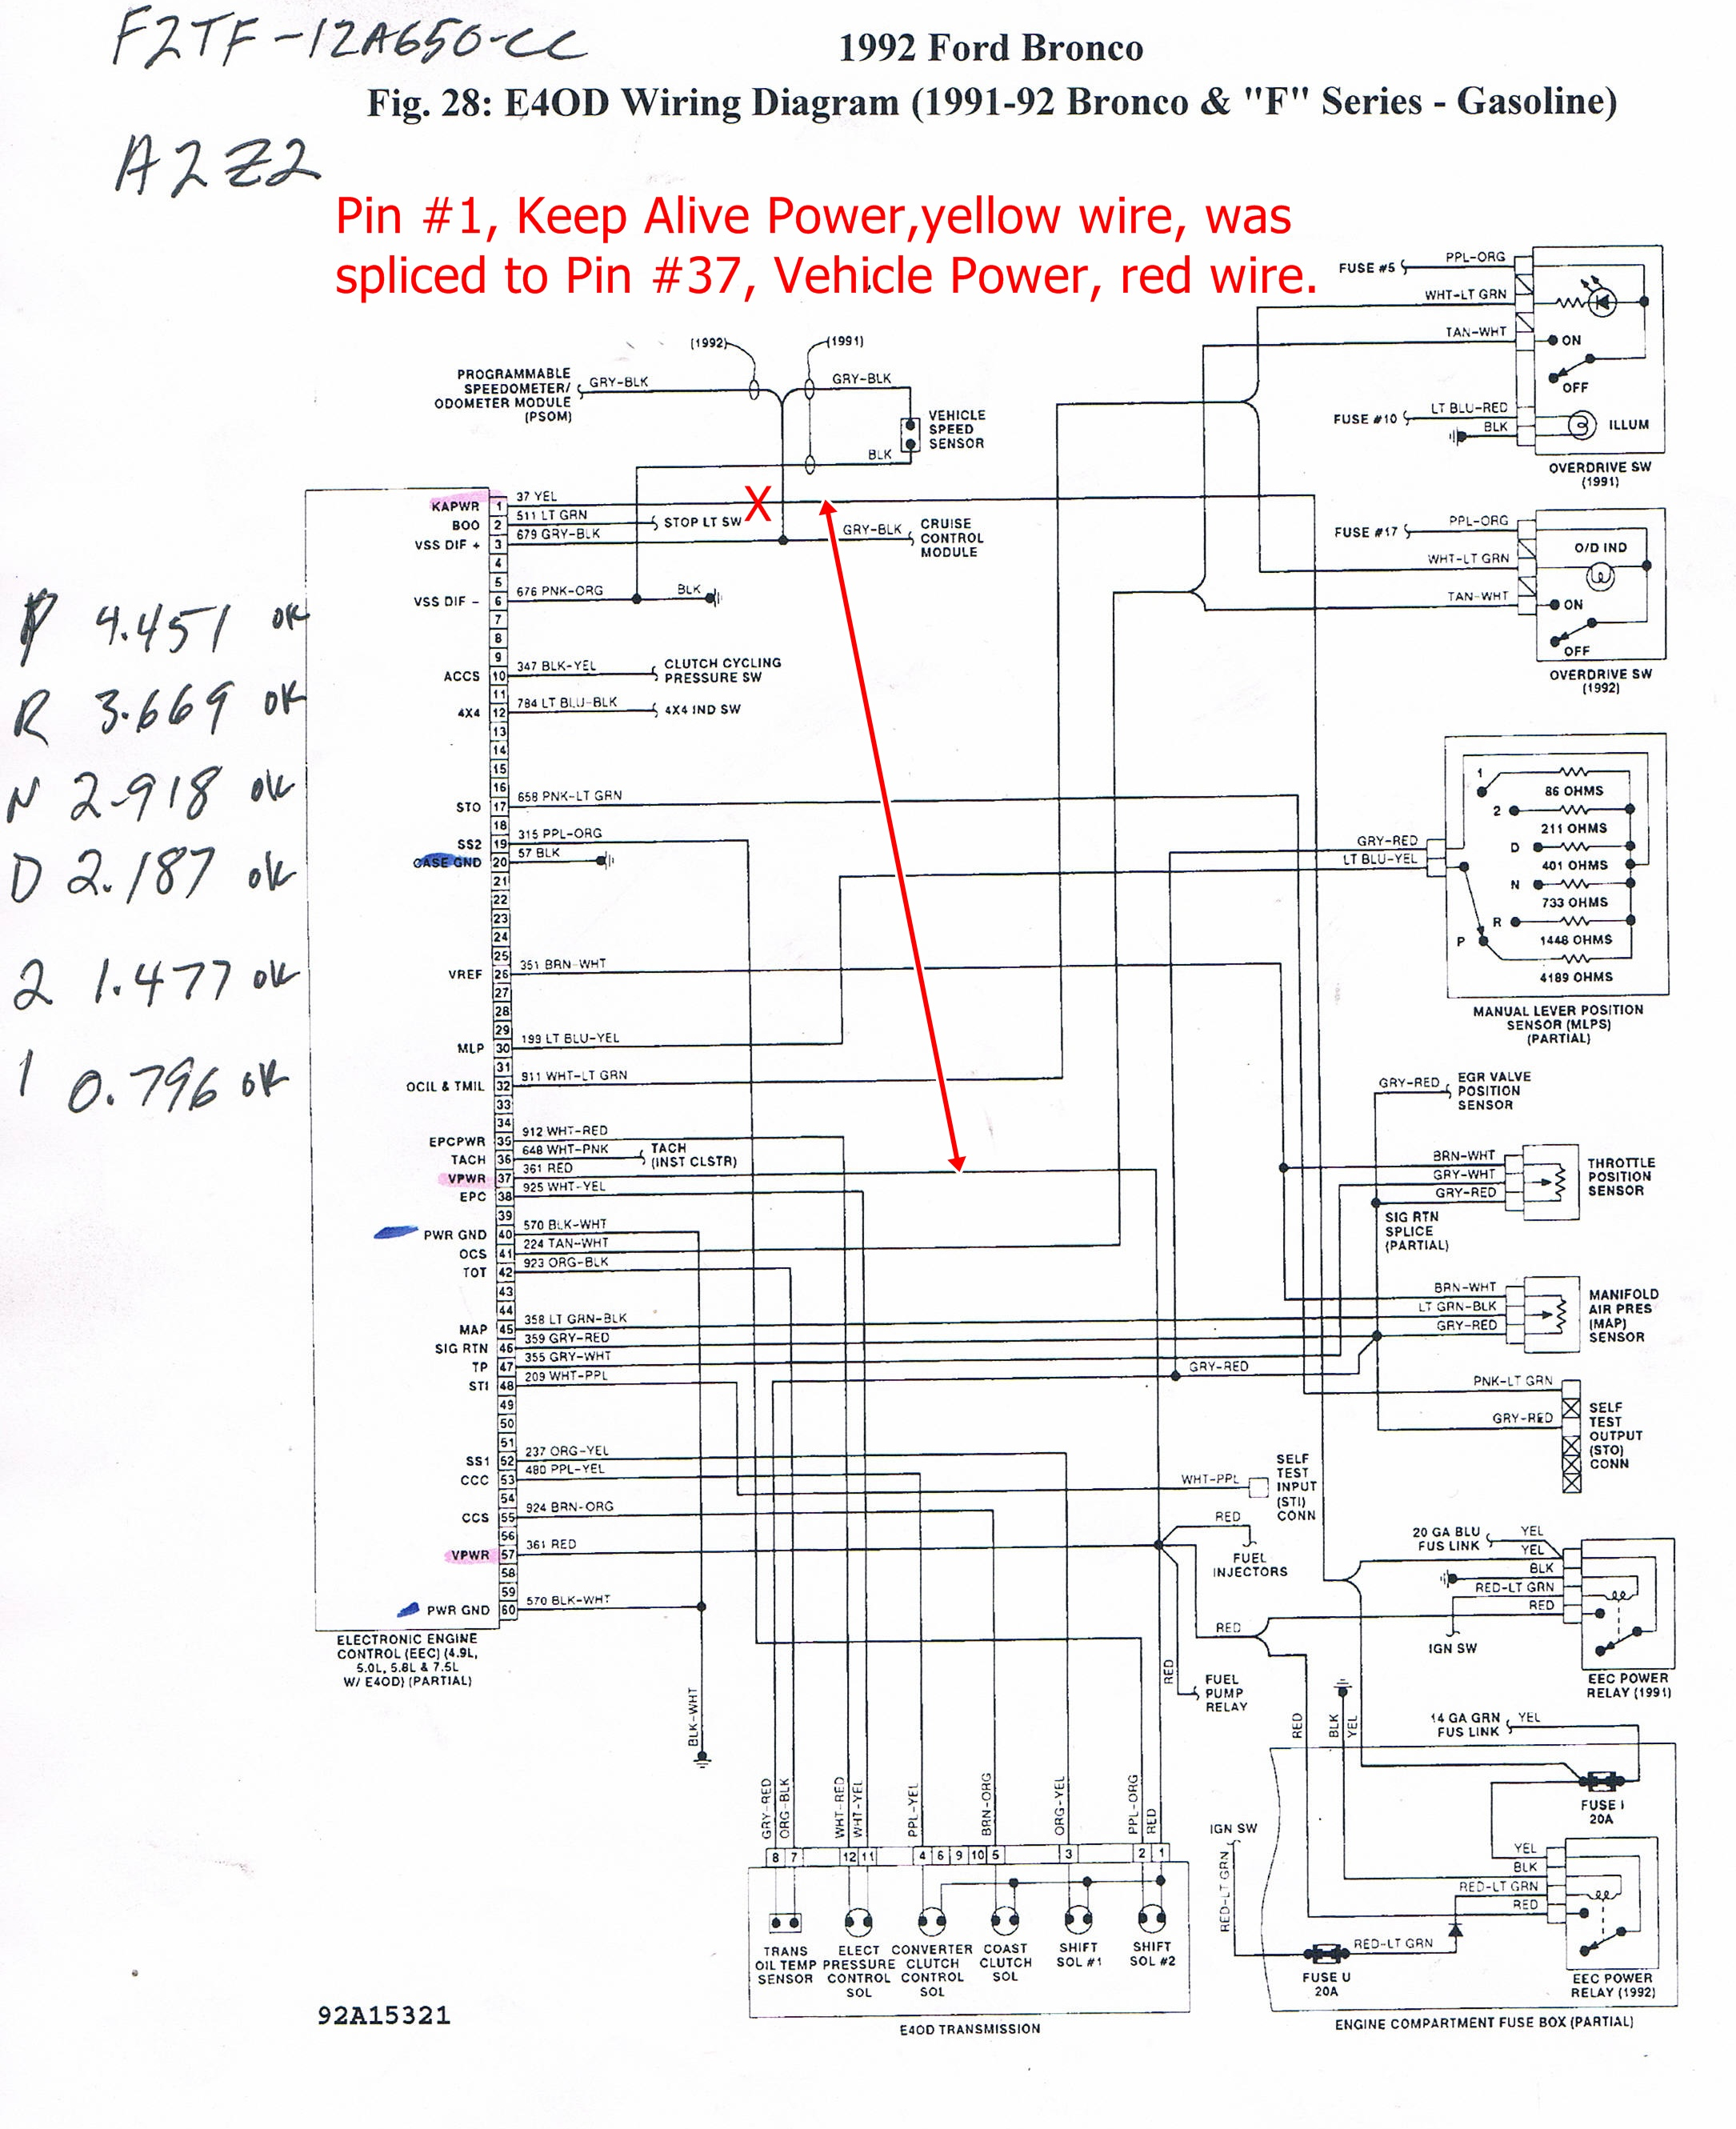 wiring diagram for 2005 ford focus the wiring diagram ford focus lambda sensor wiring diagram diagram wiring diagram